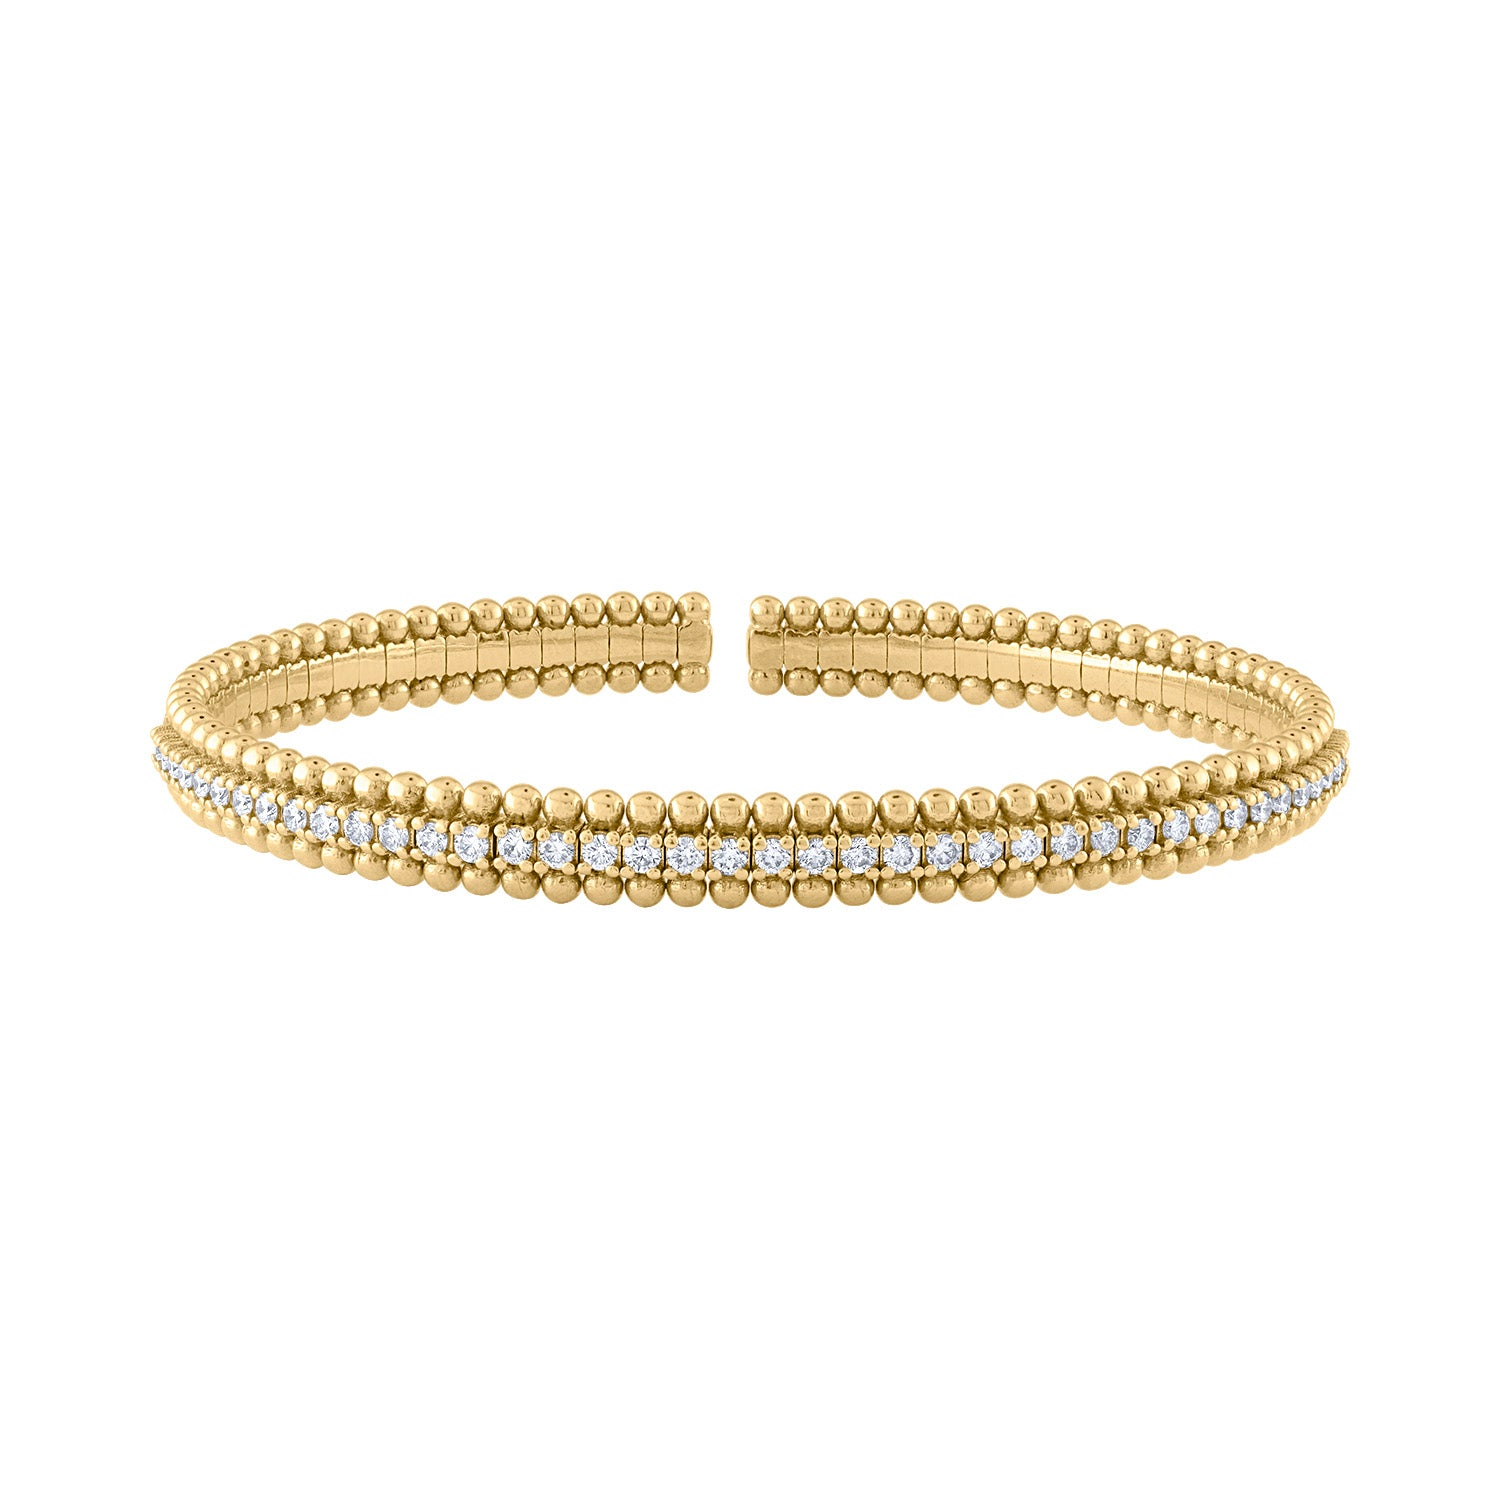 18KT GOLD DIAMOND AND MINI BALL CUFF BRACELET